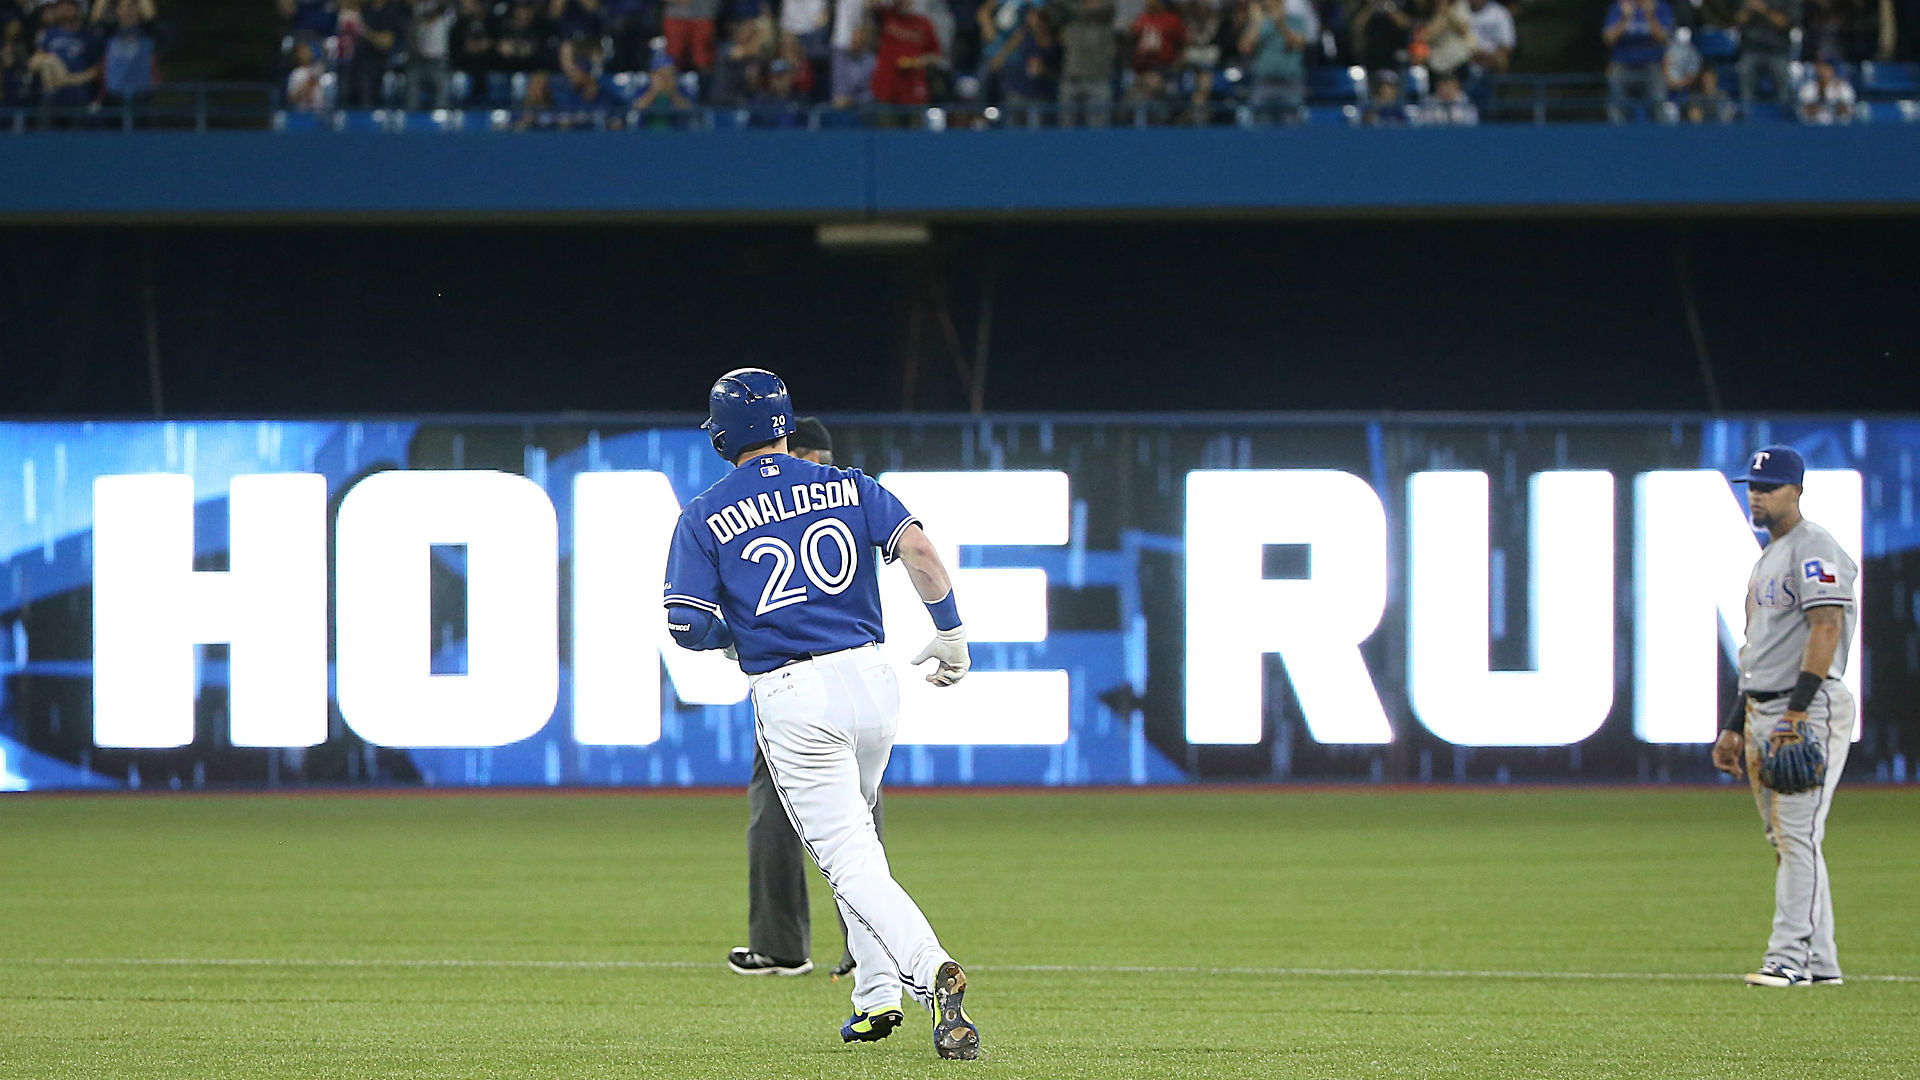 Blue-jays-home-run-stats-josh-donaldson-getty-ftr.jpg